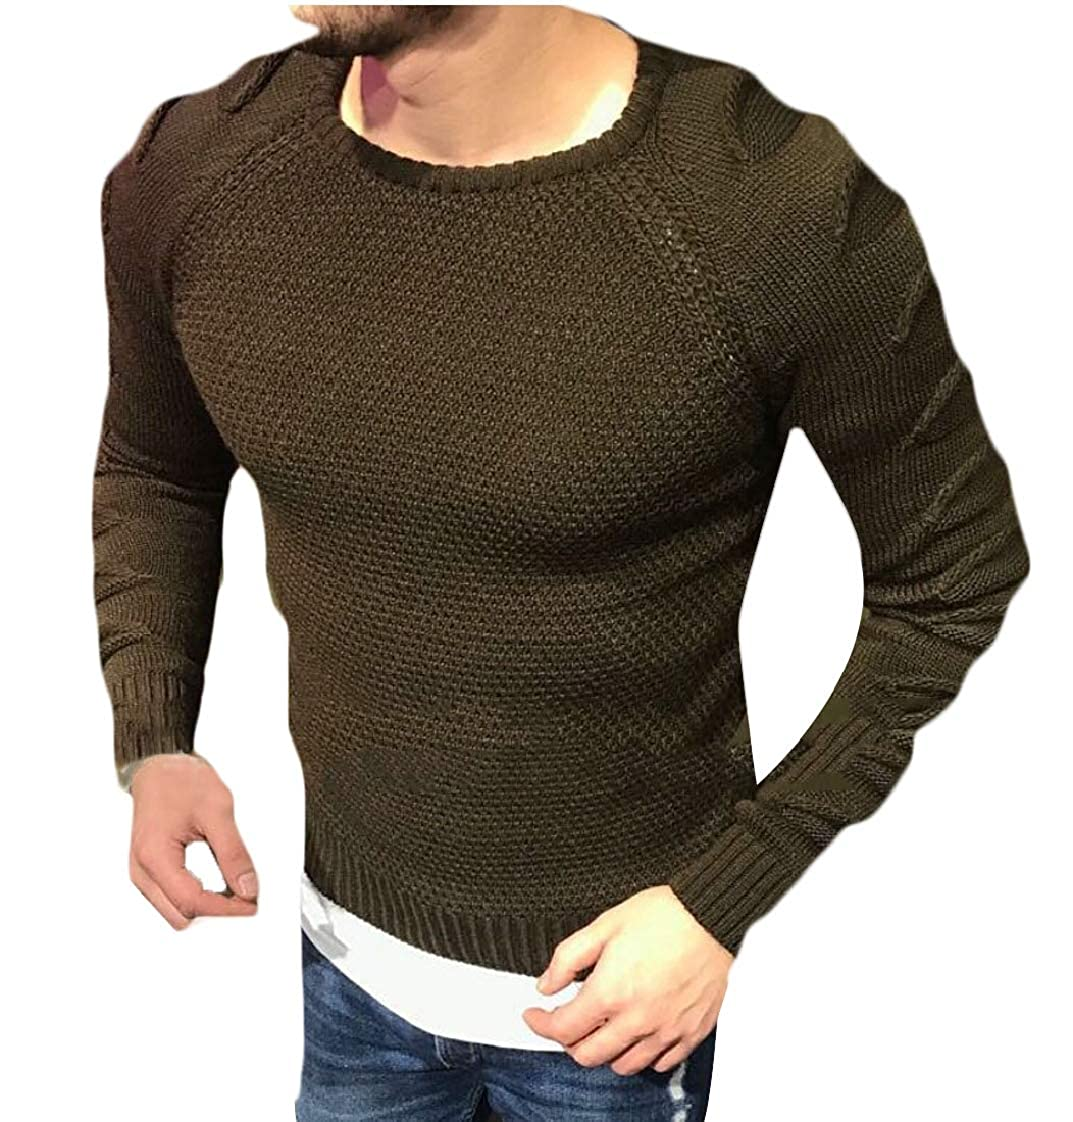 Keaac Mens Stretch Solid Pullover Knitted Sweaters Slim Fit O-Neck Long Sleeve Casual Crewneck Sweater